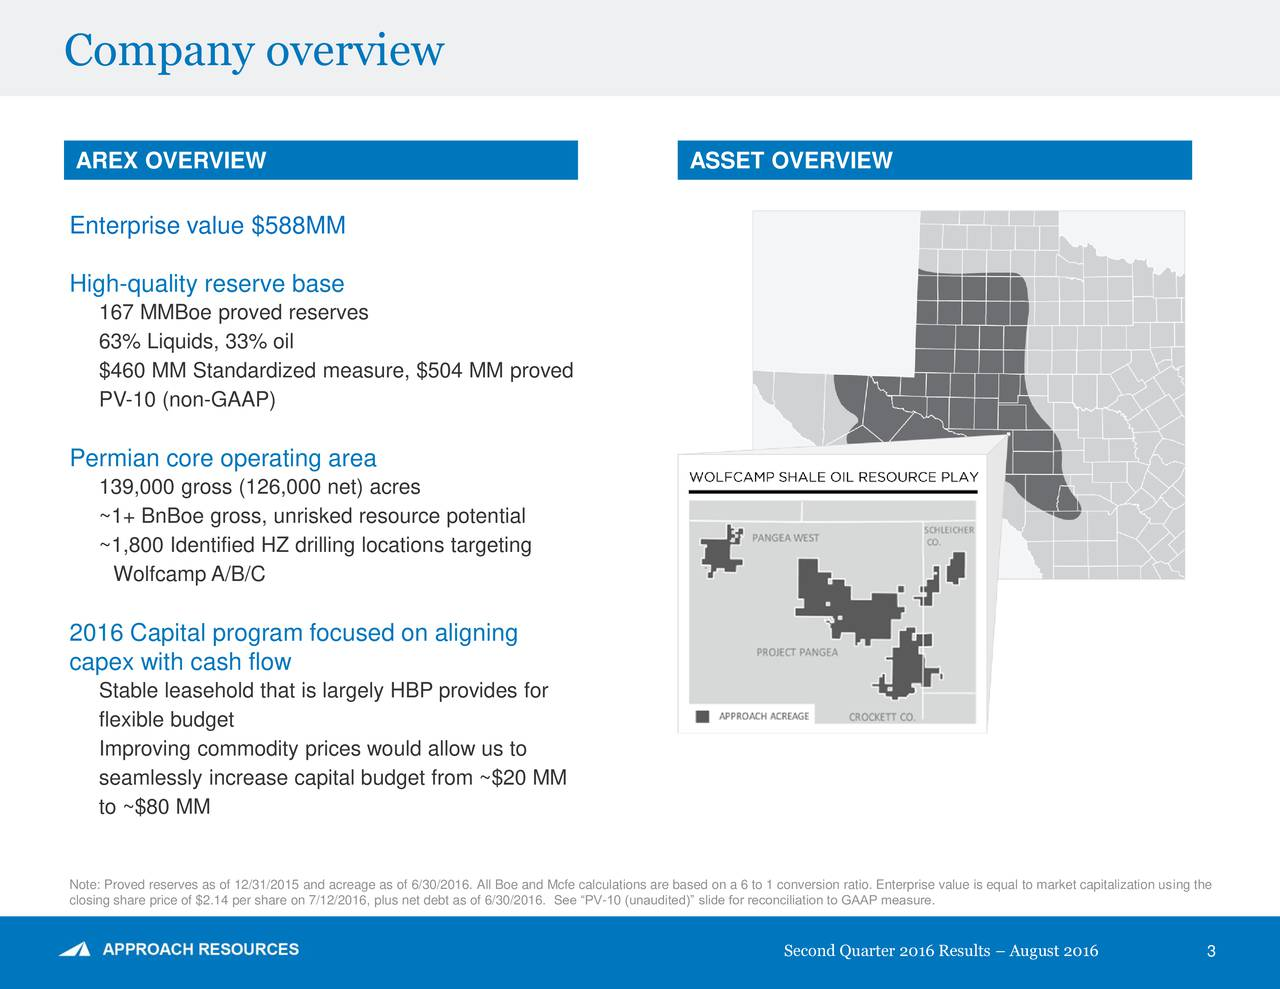 AREX OVERVIEW ASSET OVERVIEW Enterprise value $588MM High-quality reserve base 167 MMBoe proved reserves 63% Liquids, 33% oil $460 MM Standardized measure, $504 MM proved PV-10 (non-GAAP) Permian core operating area 139,000 gross (126,000 net) acres ~1+ BnBoe gross, unrisked resource potential ~1,800 Identified HZ drilling locations targeting Wolfcamp A/B/C 2016 Capital program focused on aligning capex with cash flow Stable leasehold that is largely HBP provides for flexible budget Improving commodity prices would allow us to seamlessly increase capital budget from ~$20 MM to ~$80 MM Note: Proved reserves as of 12/31/2015 and acreage as of 6/30/2016. All Boe and Mcfe calculations are based on a 6 to 1 conversion ratio. Enterprise value is equal to market capitalization using the closing share price of $2.14 per share on 7/12/2016, plus net debt as of 6/30/2016. See PV-10 (unaudited) slide for reconciliation to GAAP measure. Second Quarter 2016 Results  August 2016 3